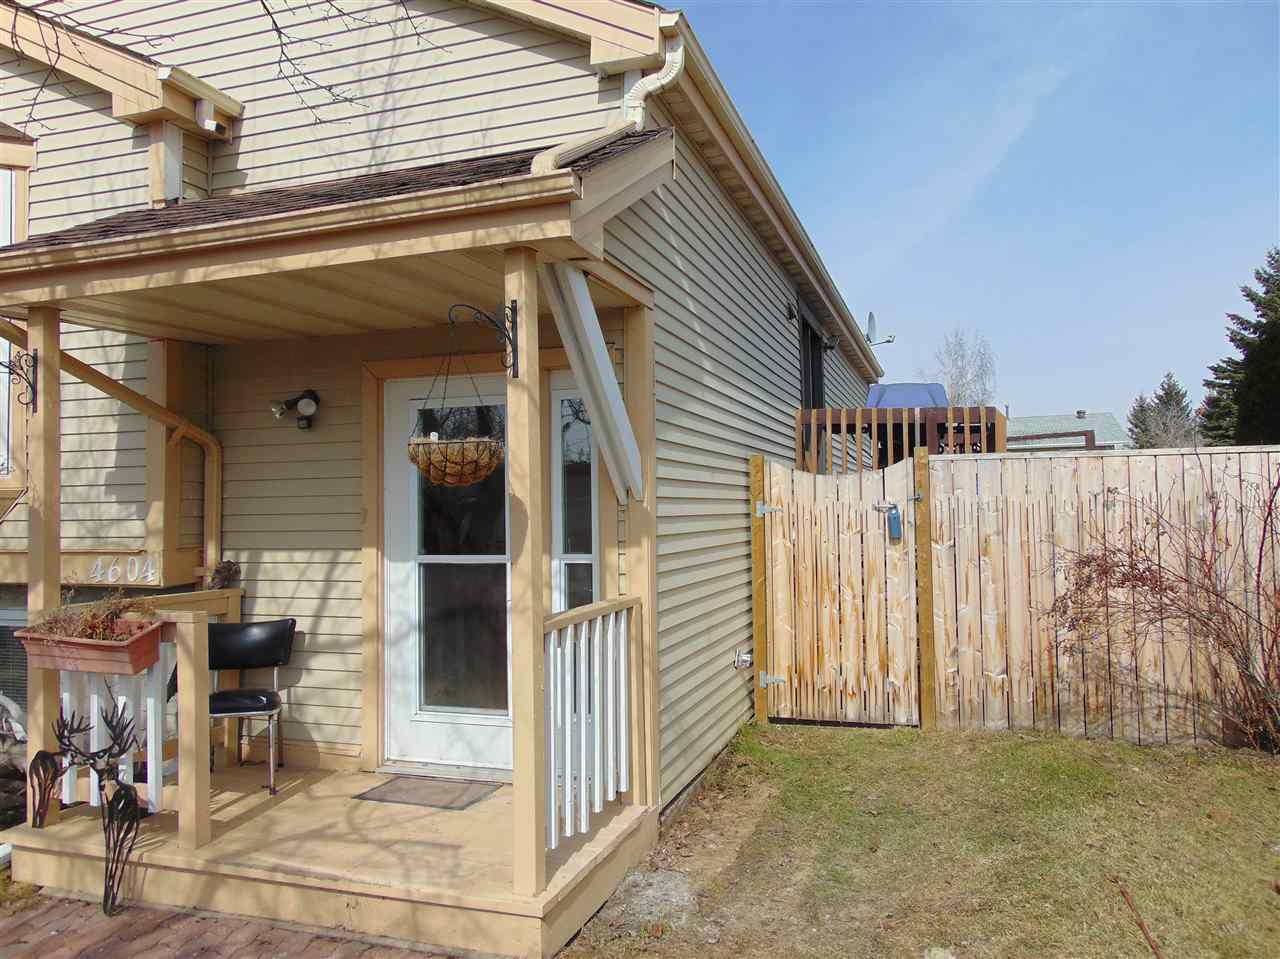 Photo 3: 4604 43 Avenue: Gibbons House for sale : MLS(r) # E4060108